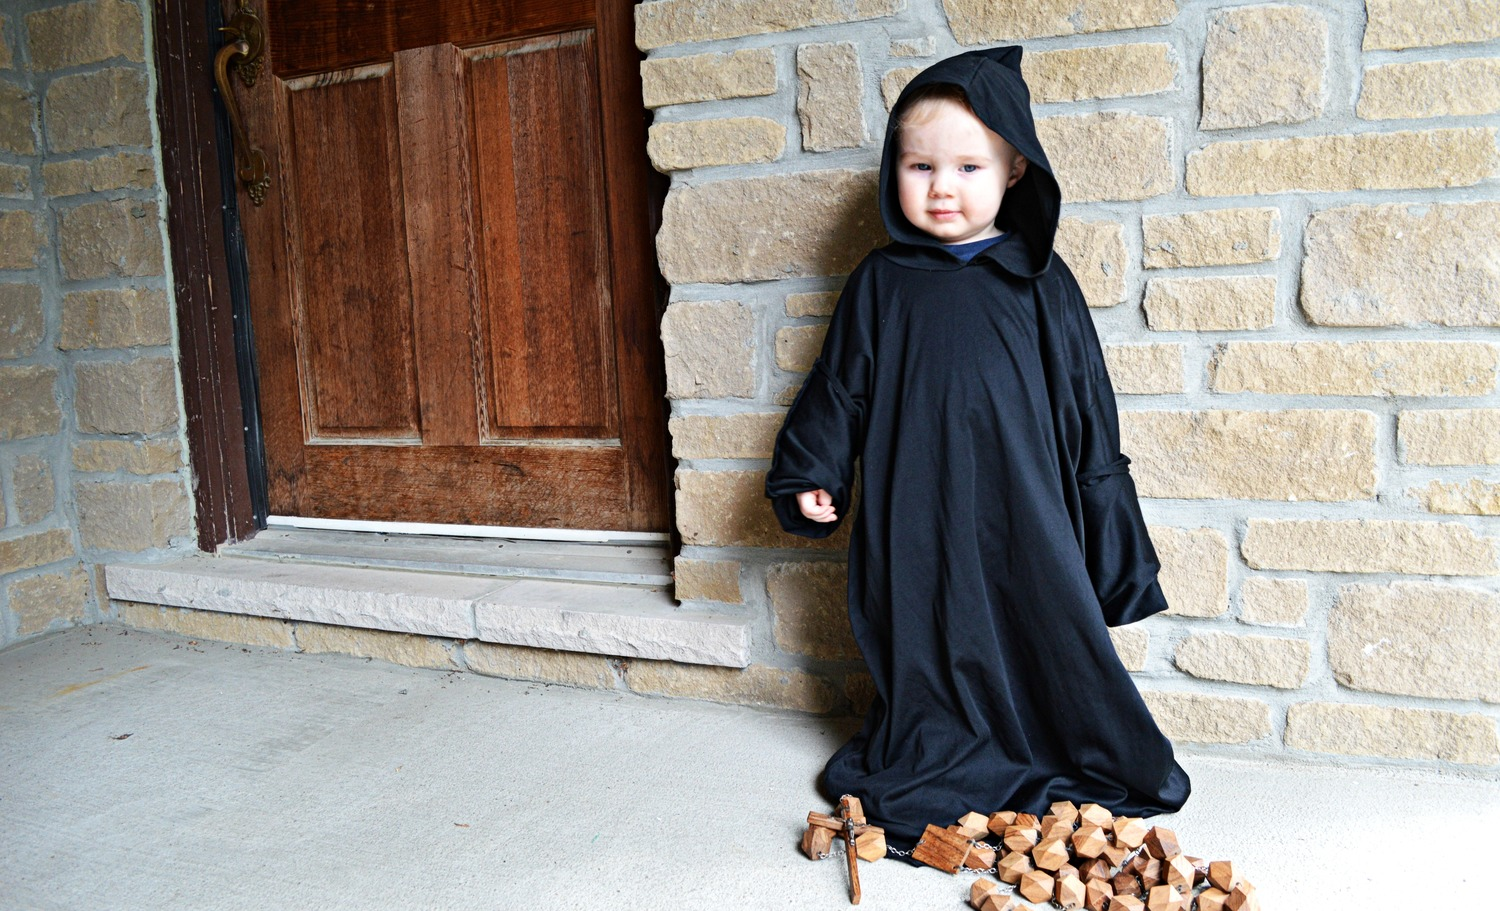 A child in a monk's costume